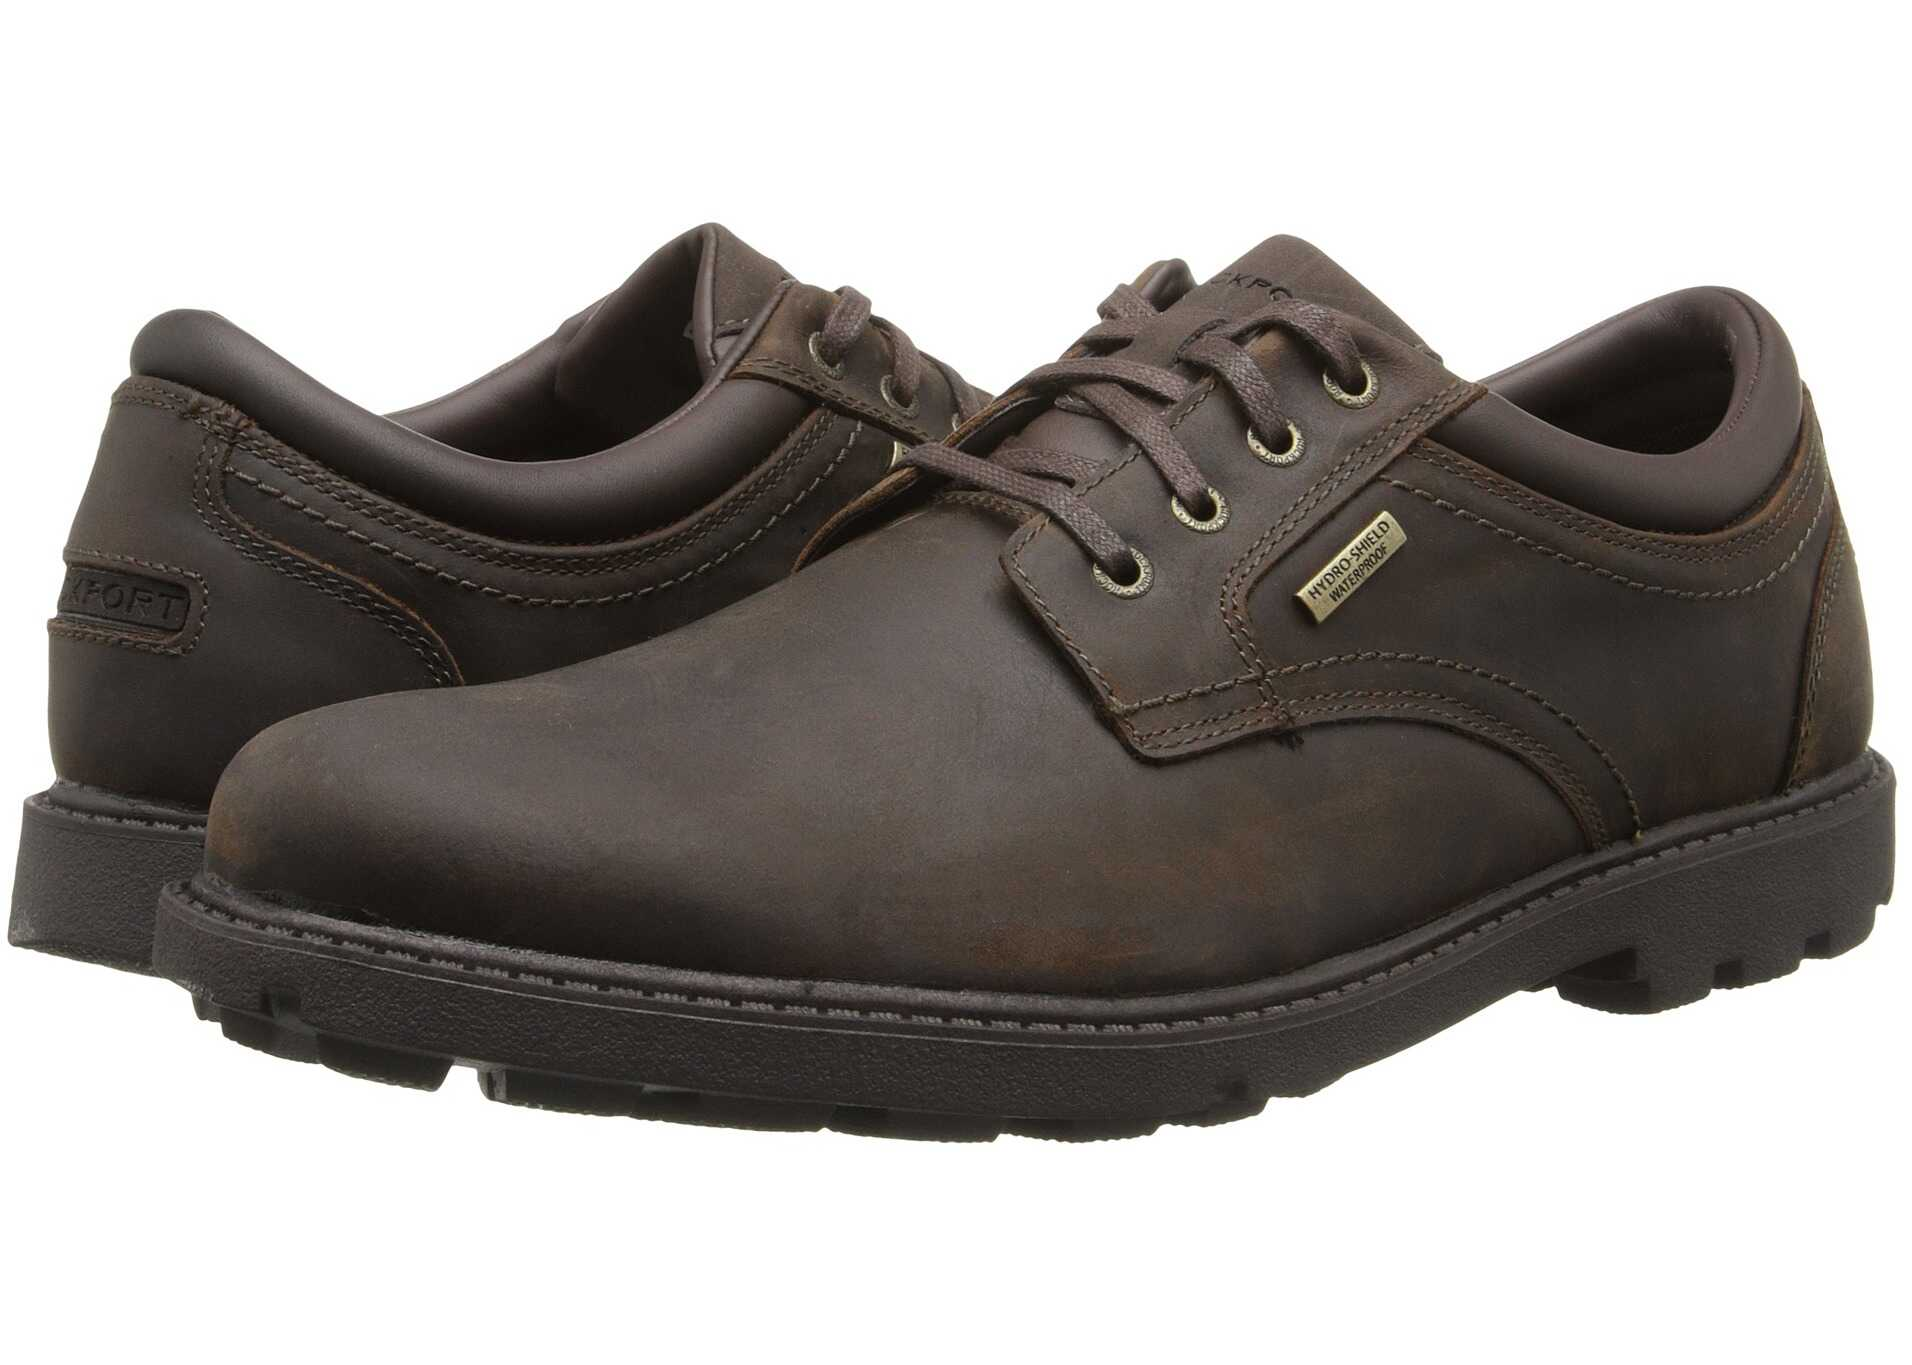 Rockport Storm Surge Water Proof Plain Toe Oxford Tan